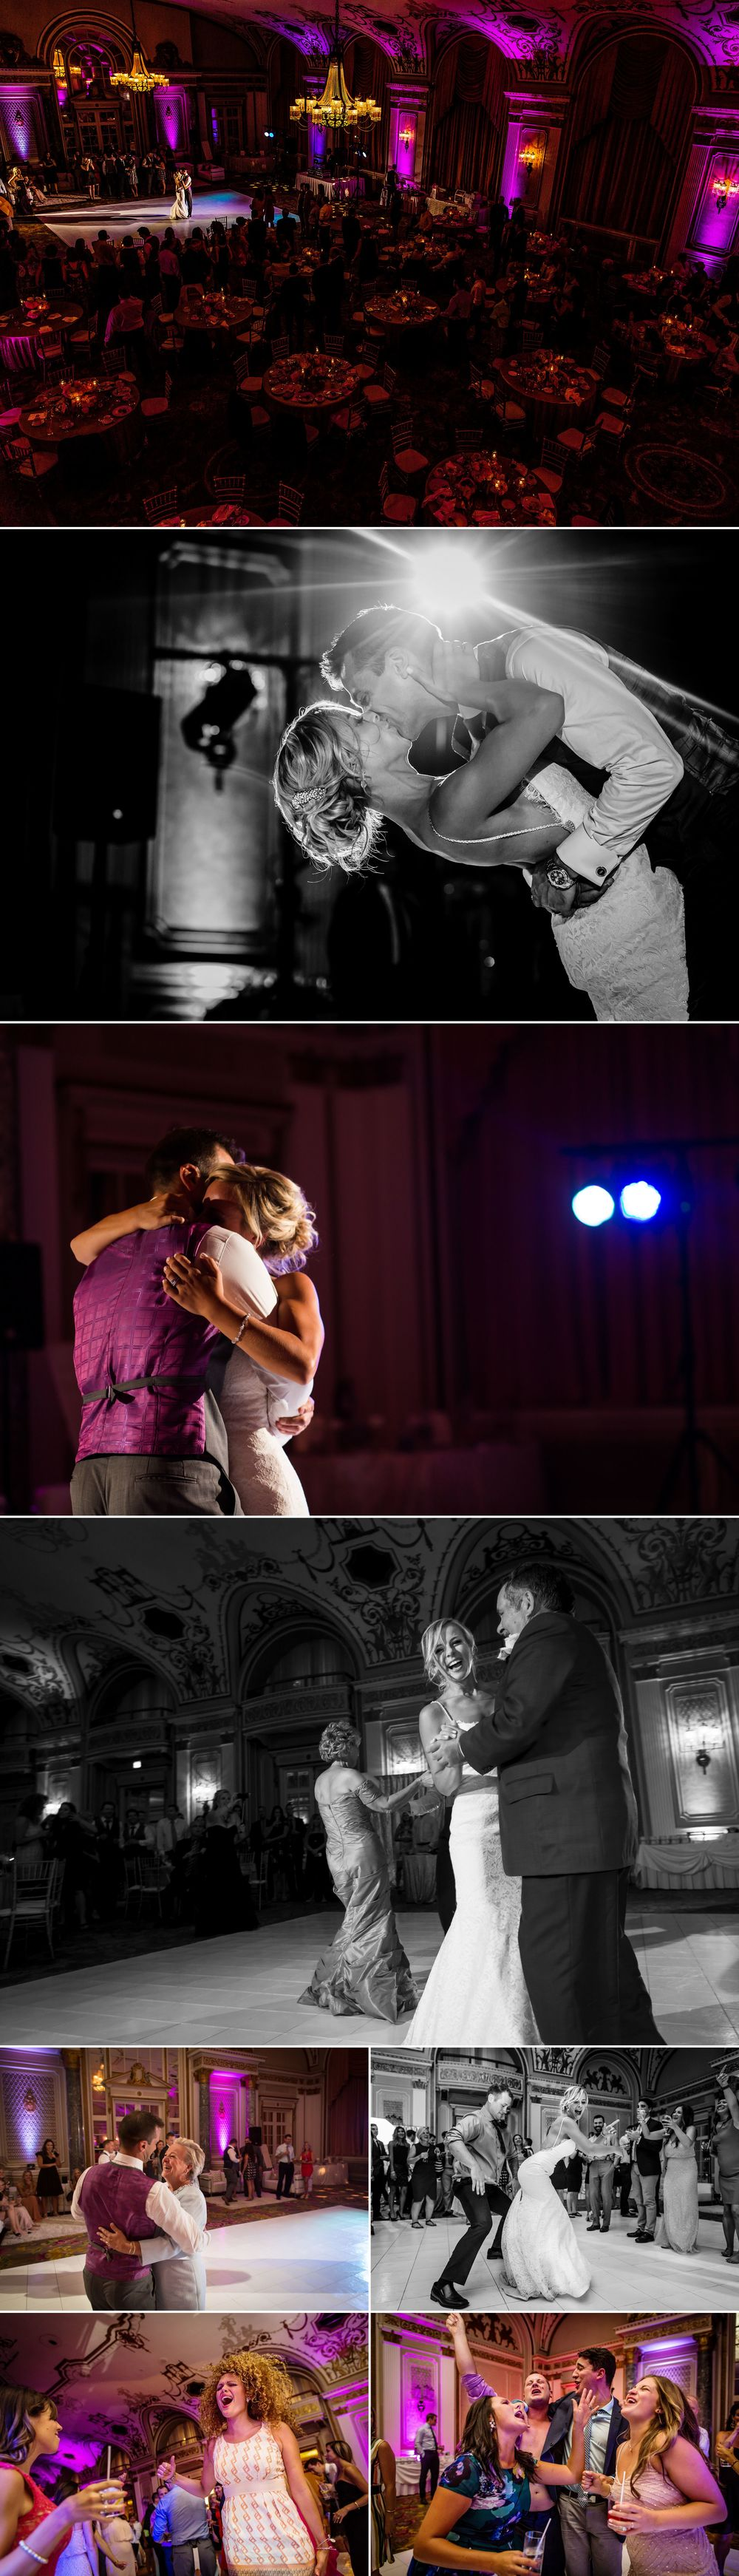 People dancing at a wedding in the ballroom at the chateau laurier in Ottawa